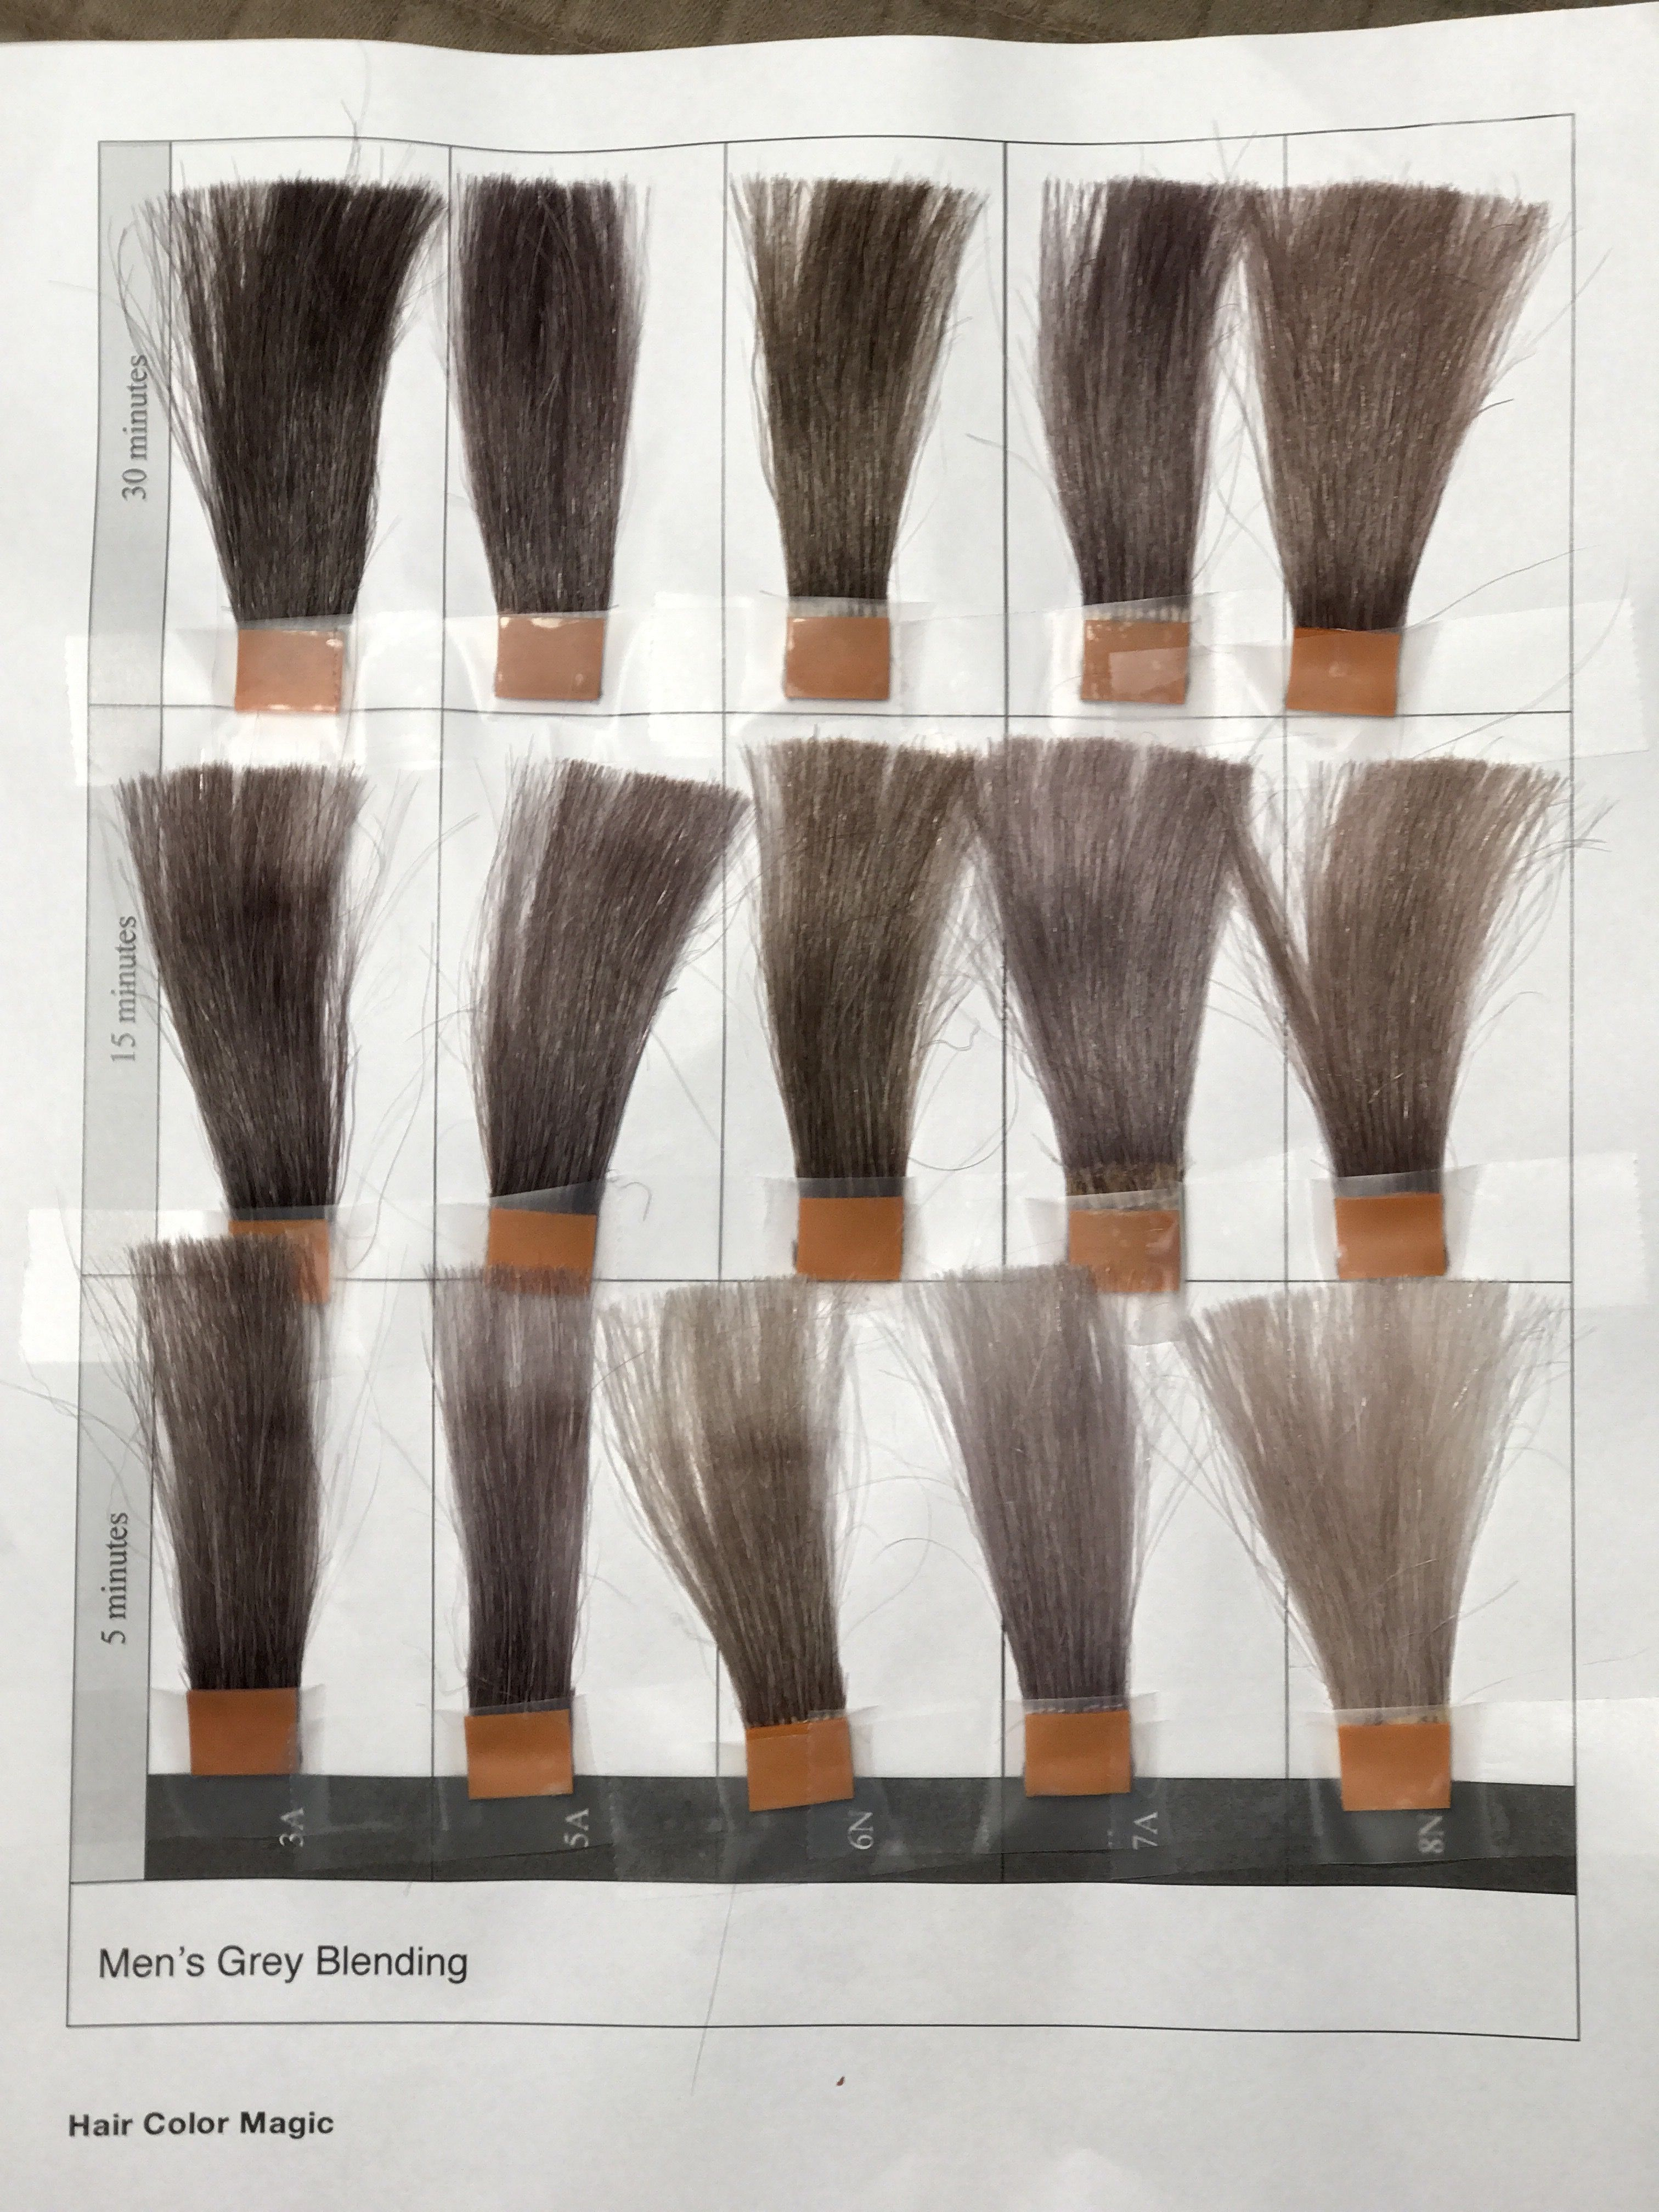 Men's Grey Blending Timing -5 minutes15 minutes30 minutesFrom the New True2Tone HCM class!Great Shadow Root,Make those blondes and Brunettes smokey!!#avedacolor #avedaartist  #neverstoplearning #ha...